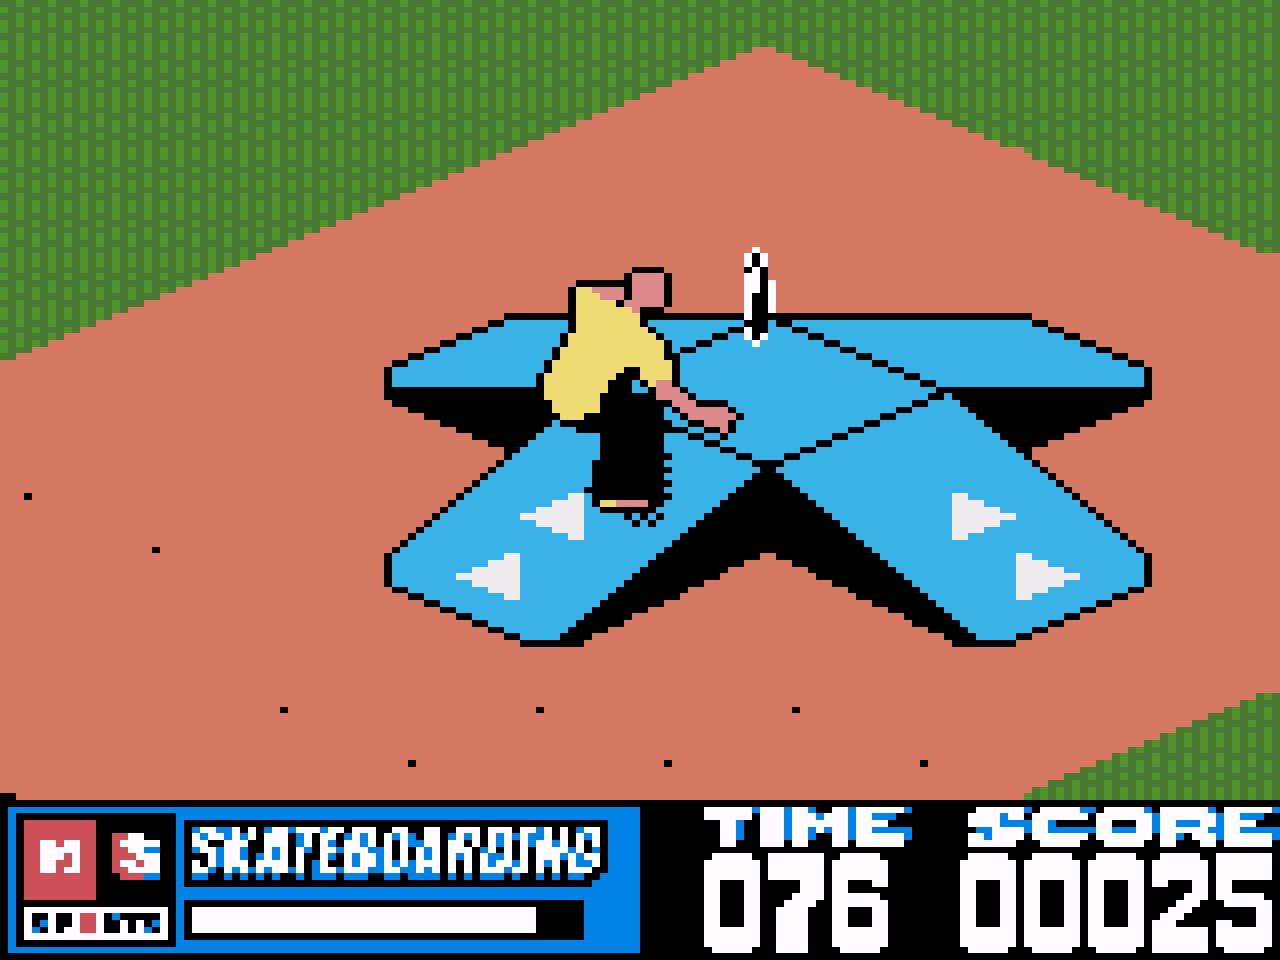 https://s3.eu-west-3.amazonaws.com/games.anthony-dessalles.com/MTV Sports Skateboarding featuring Andy MacDonald GBC 2020 - Screenshots/MTV Sports Skateboarding featuring Andy MacDonald-201115-140737.png